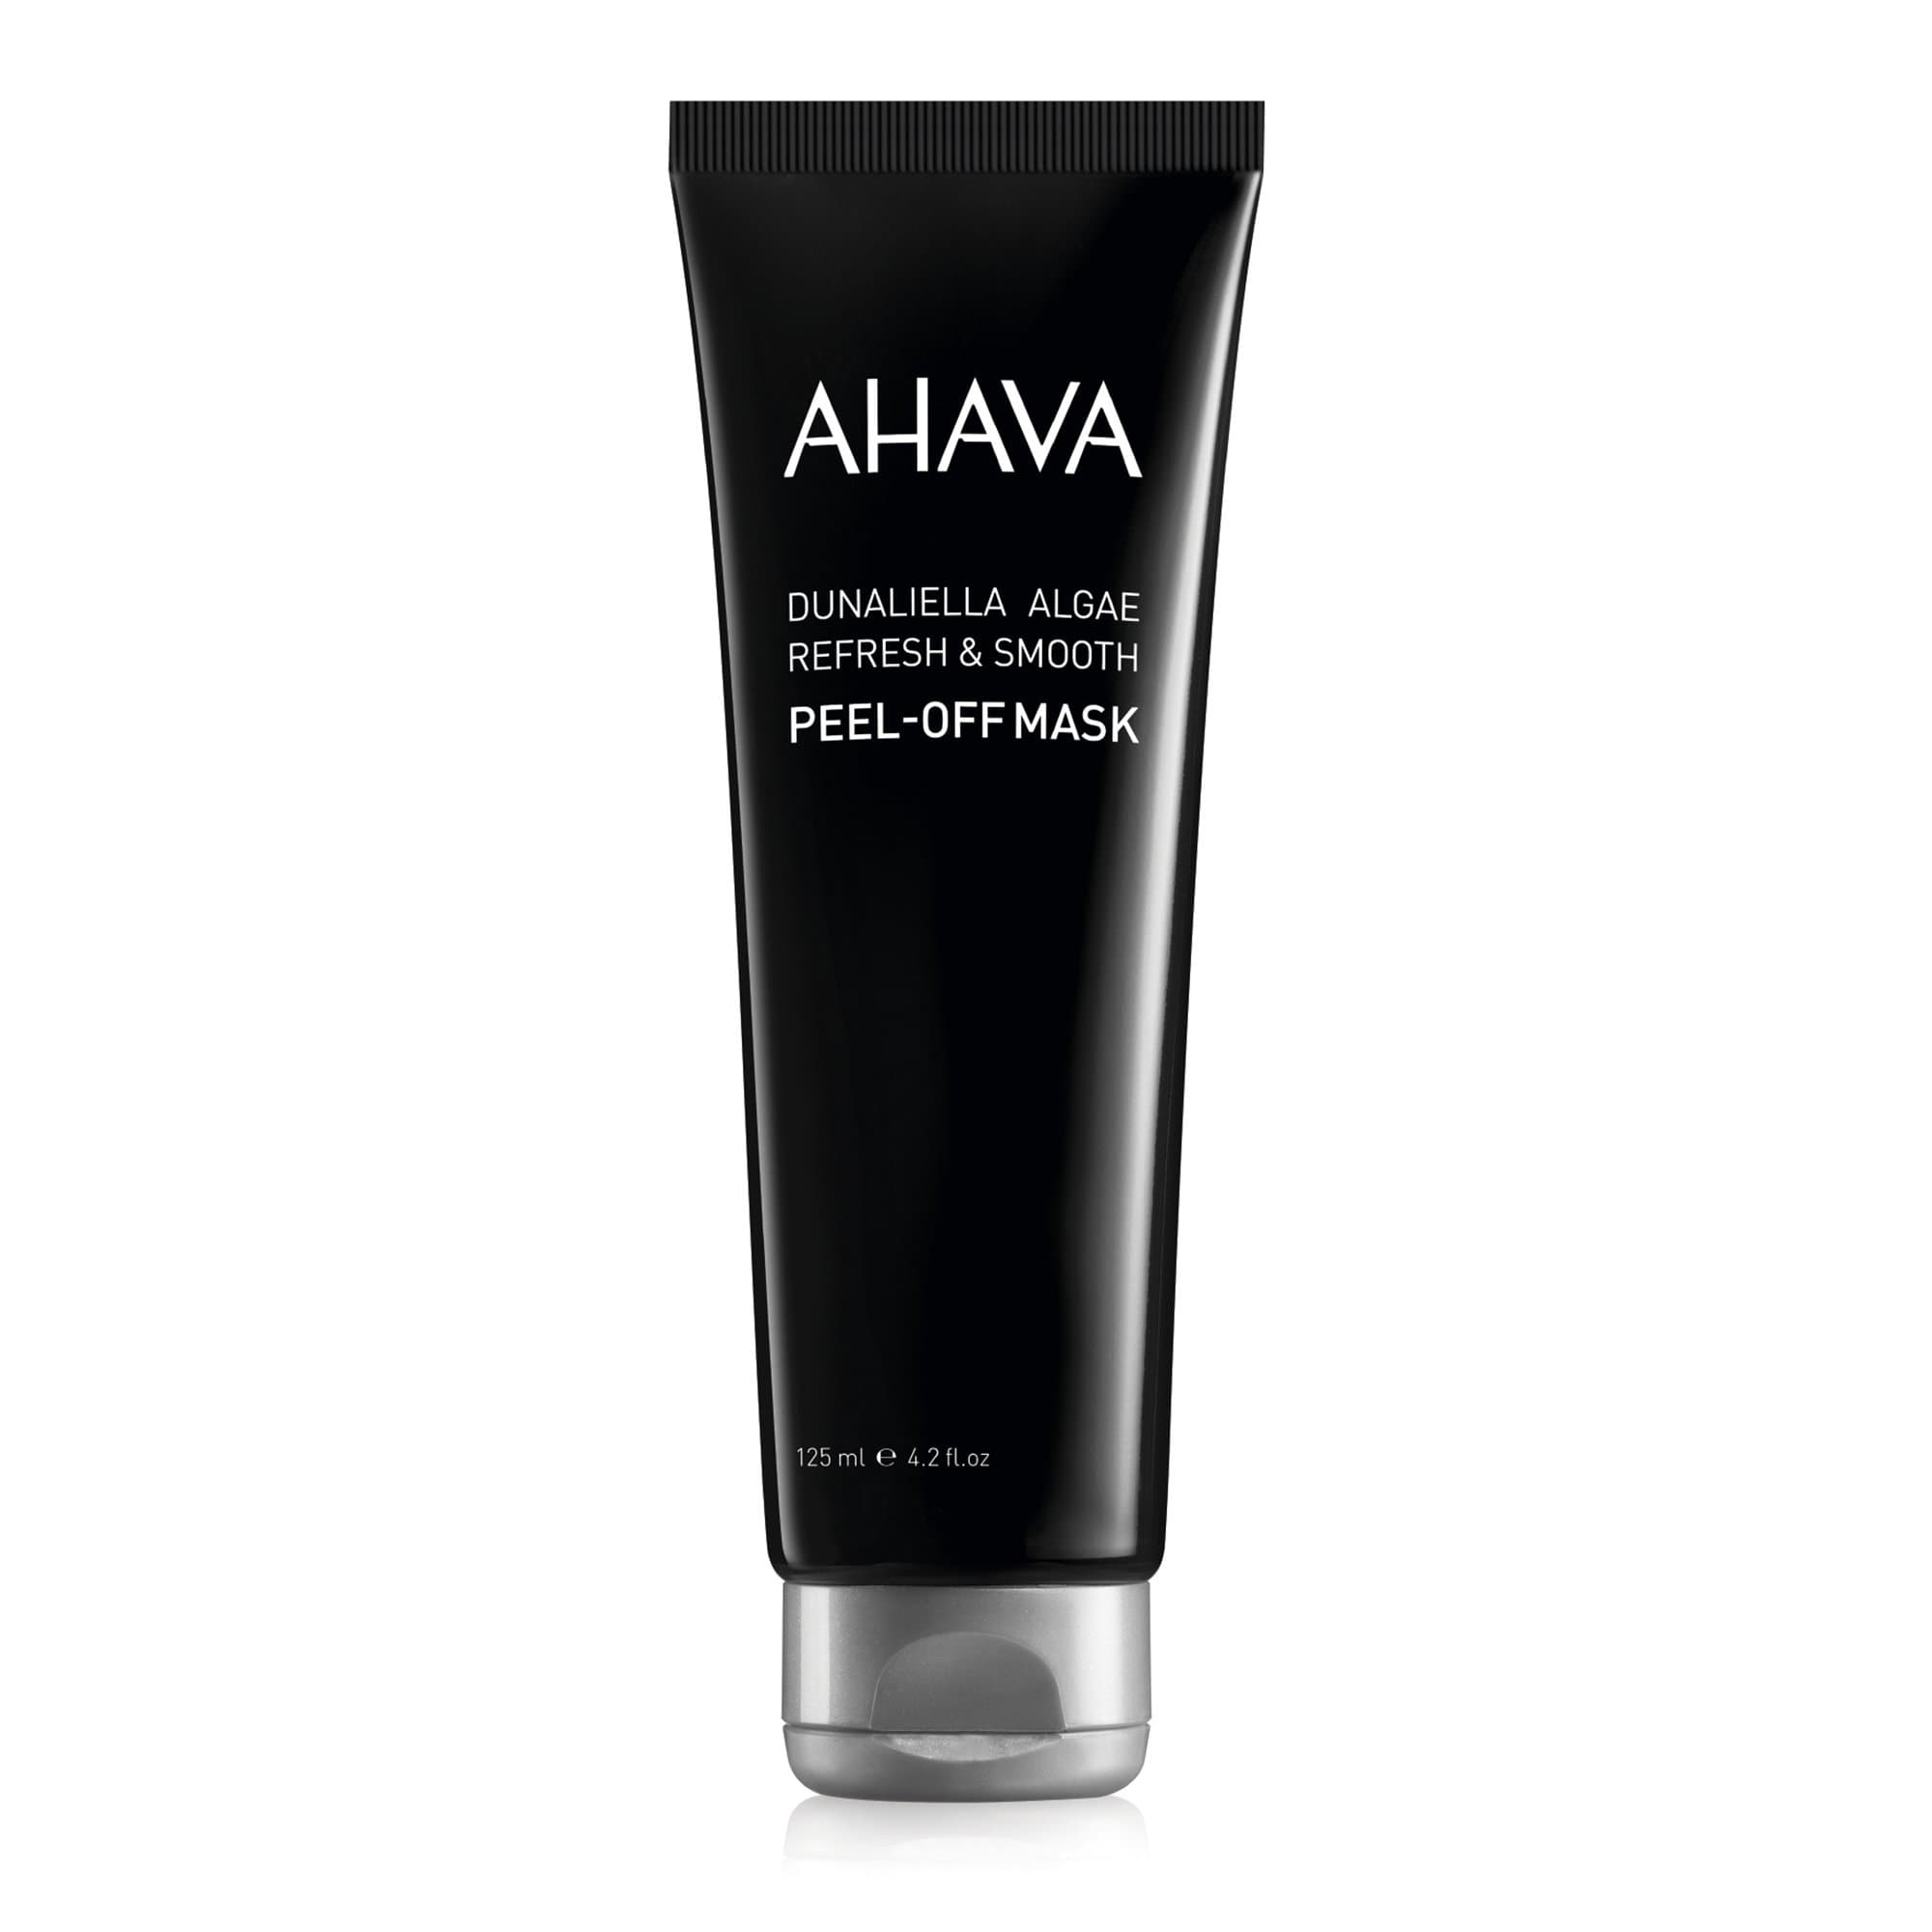 Ahava Dunaliella Algae Refresh Smooth Pell-Off Mask 125ml